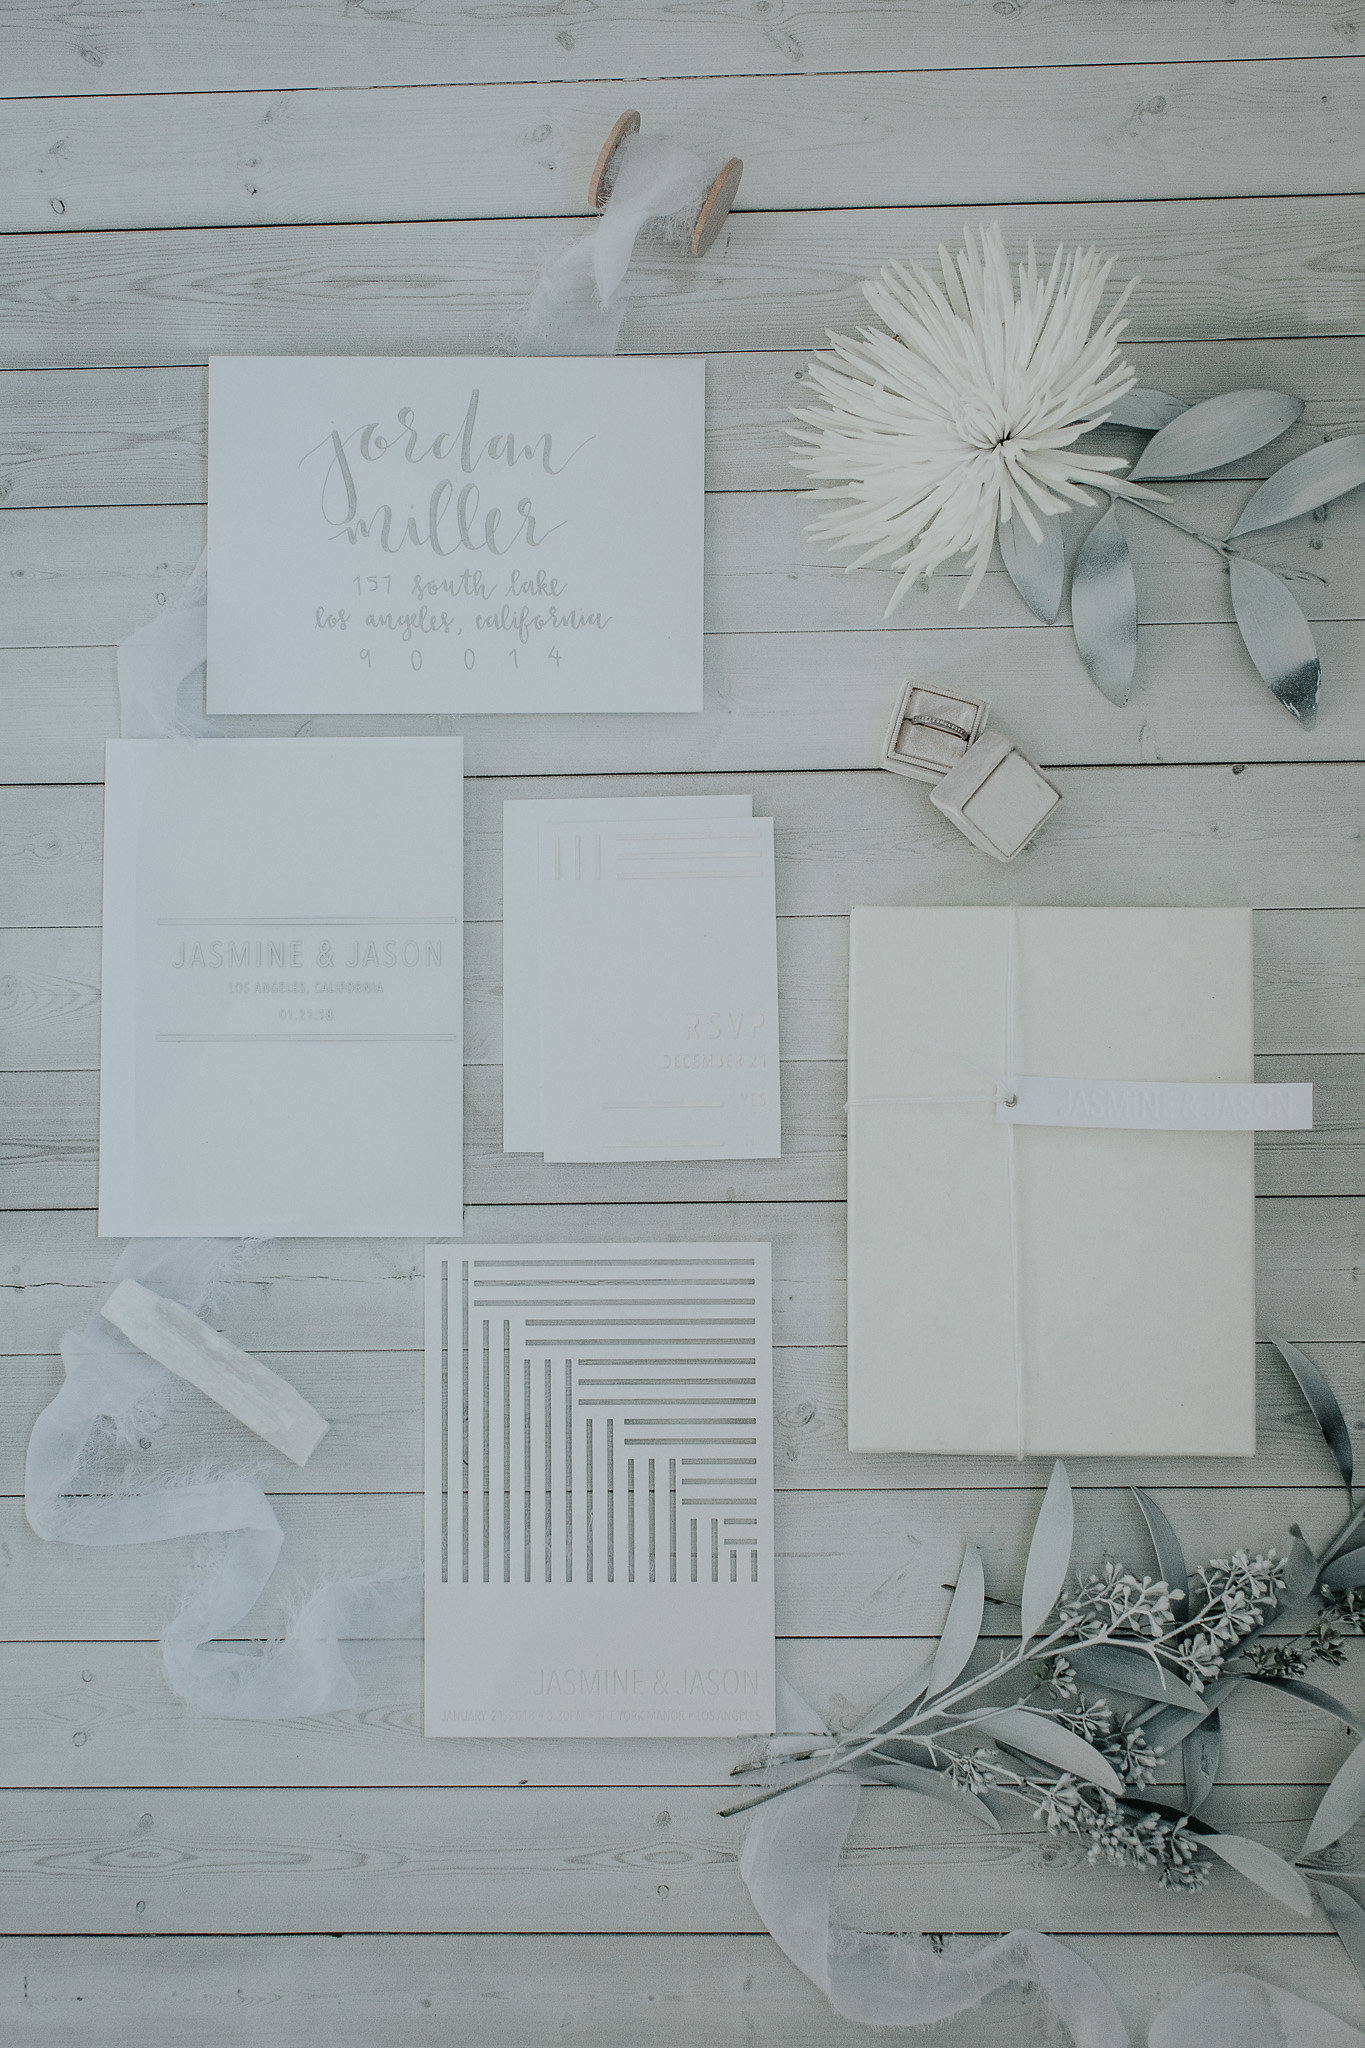 White Matte Acrylic Invitations for Monochromatic White Winter Wedding